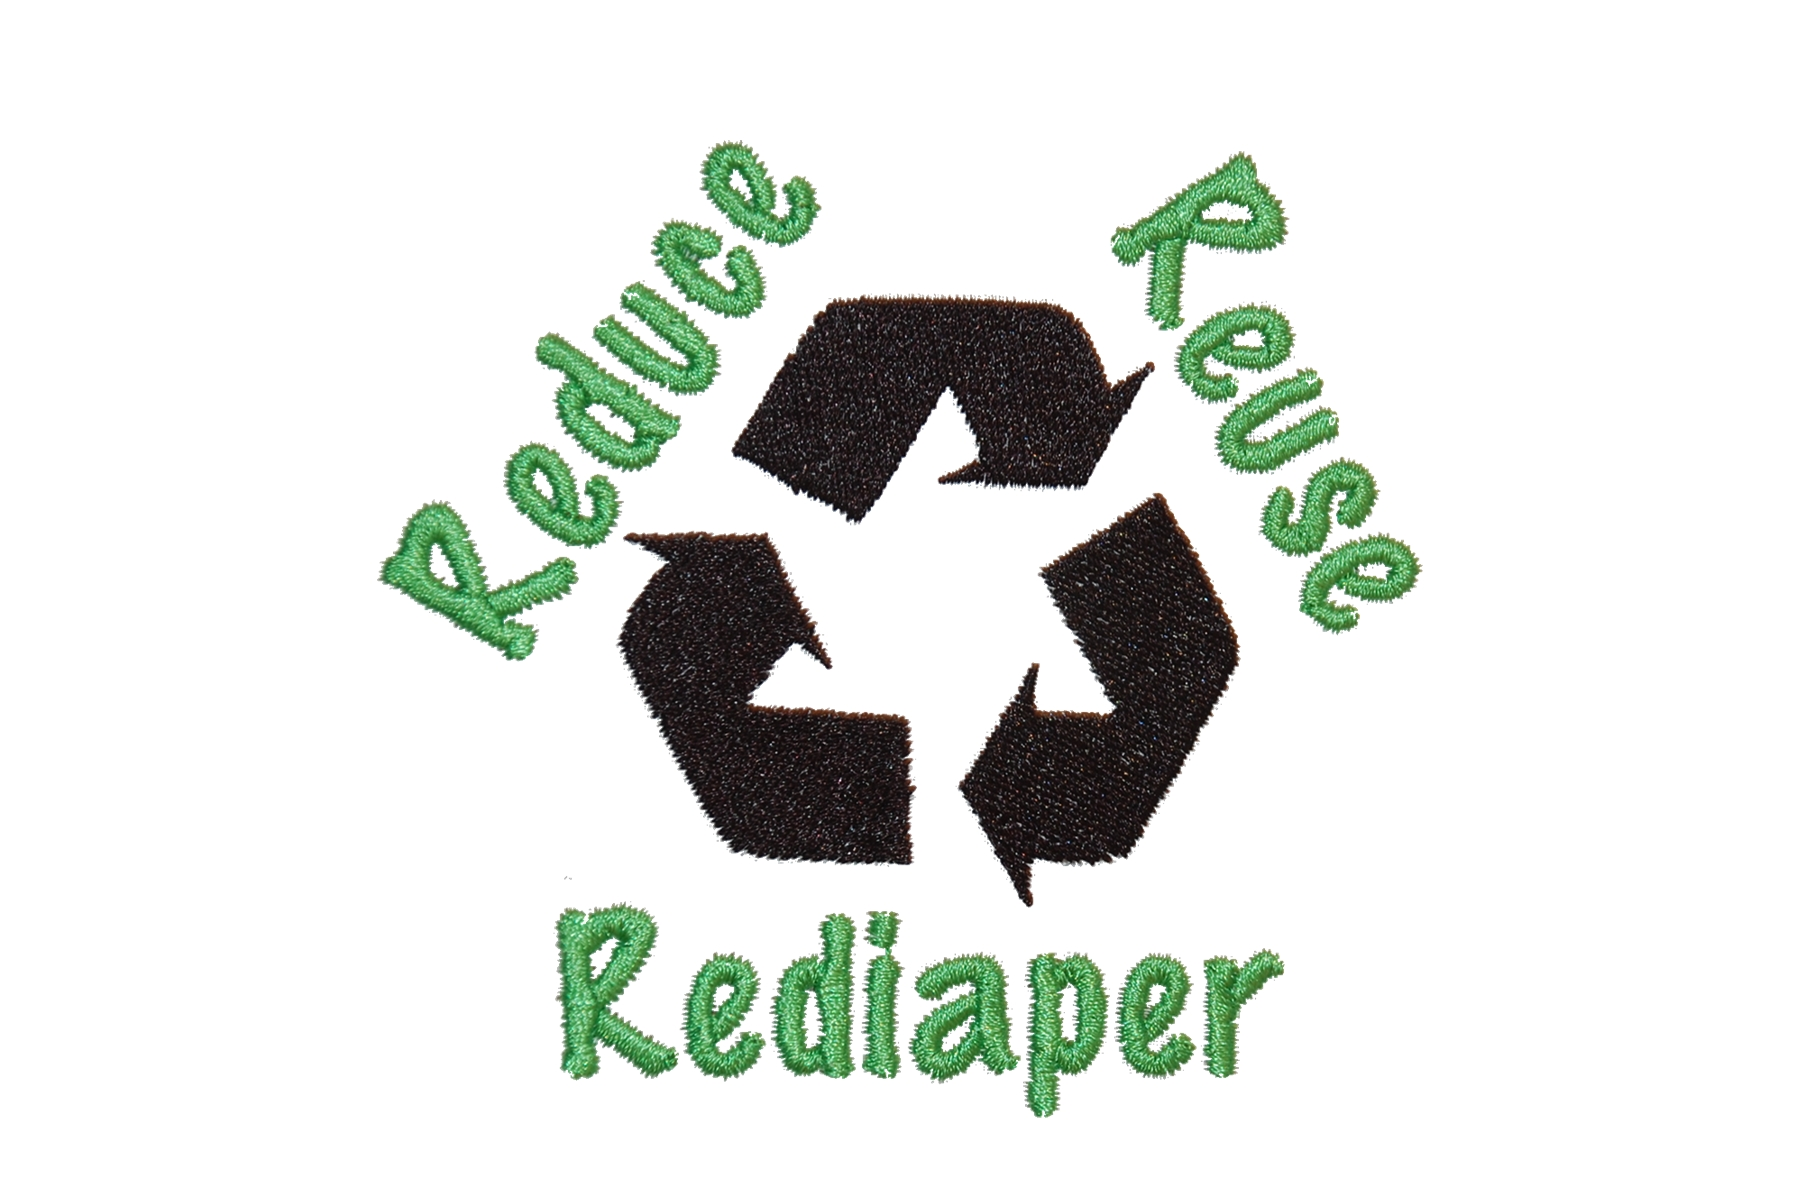 Reduce Reuse Rediaper Embroidery